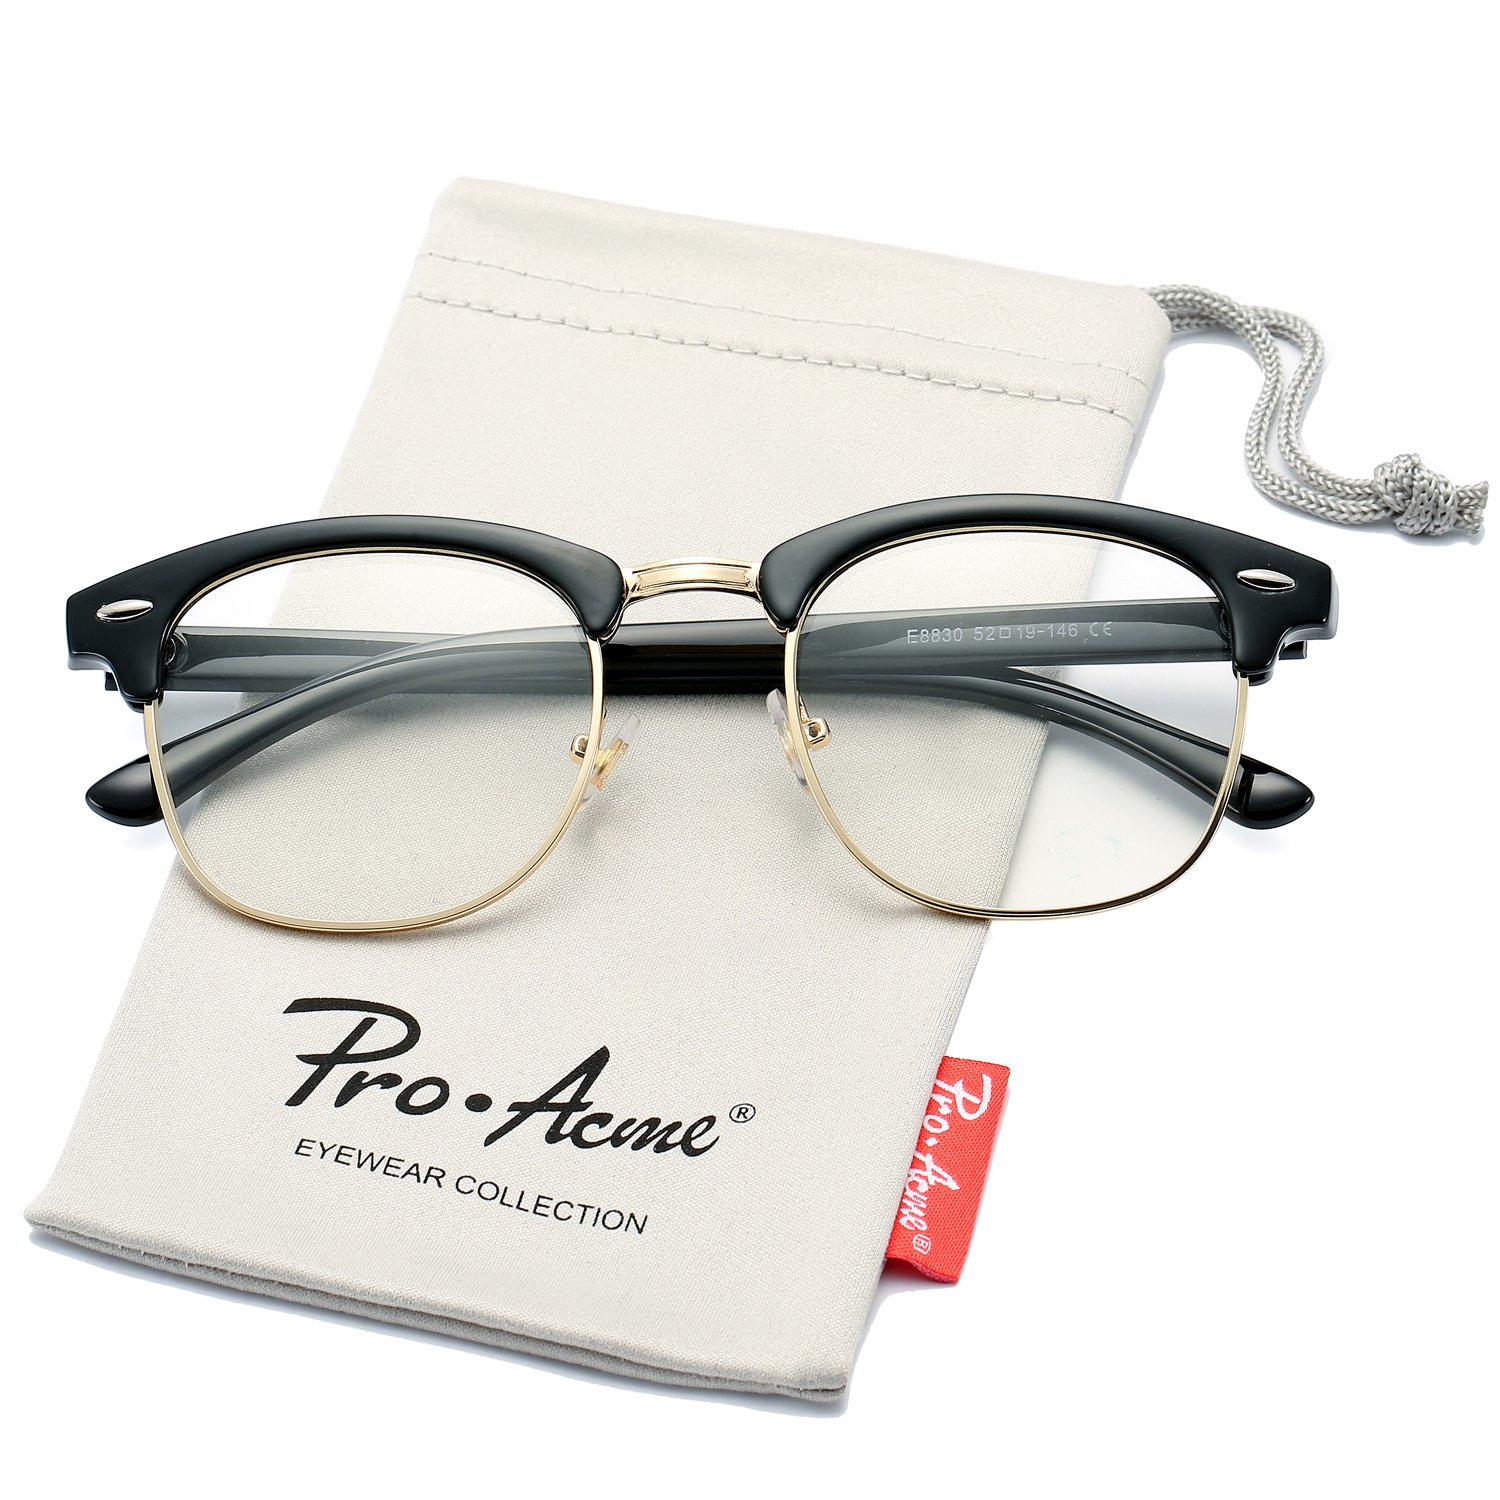 1a2bb56c3 Amazon.com: Pro Acme Retro Semi Rimless Clear Lens Glasses Classic Vintage  Unisex Eyeglasses (Black/Gold Rimmed): Clothing